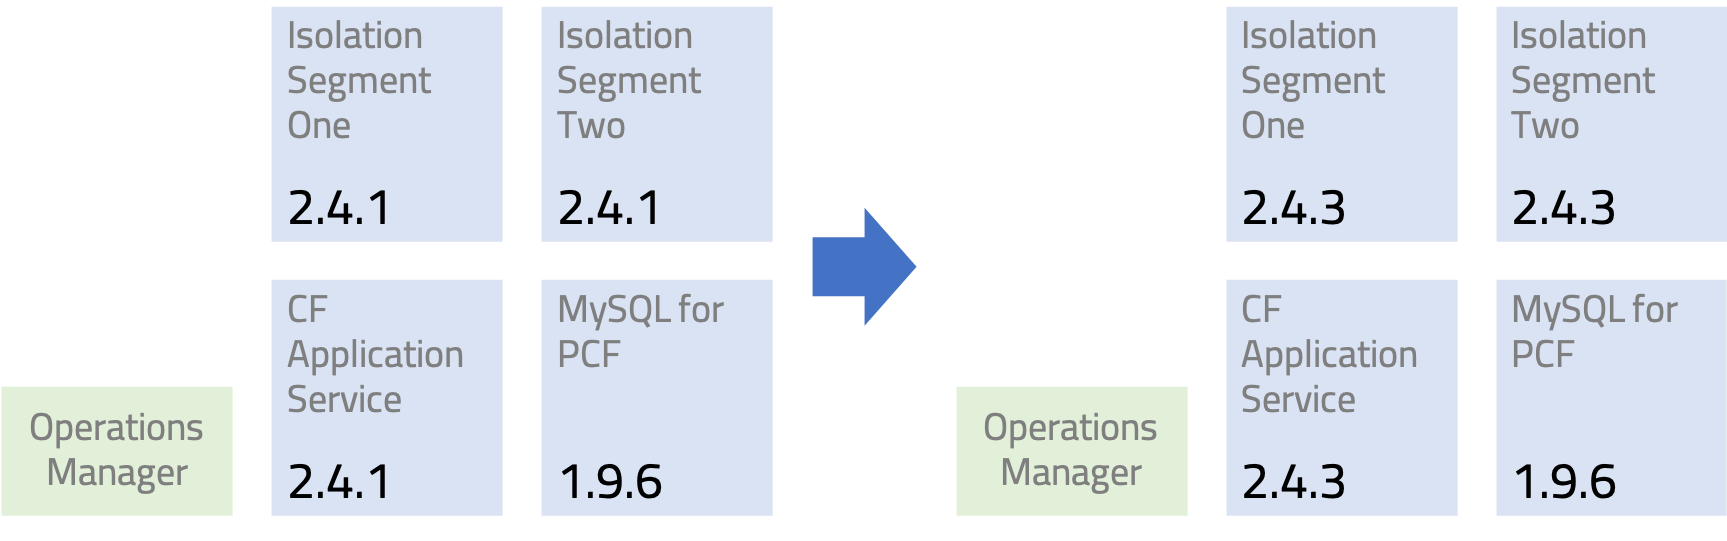 Example Pivotal Cloud Foundry Upgrade with some additional products.